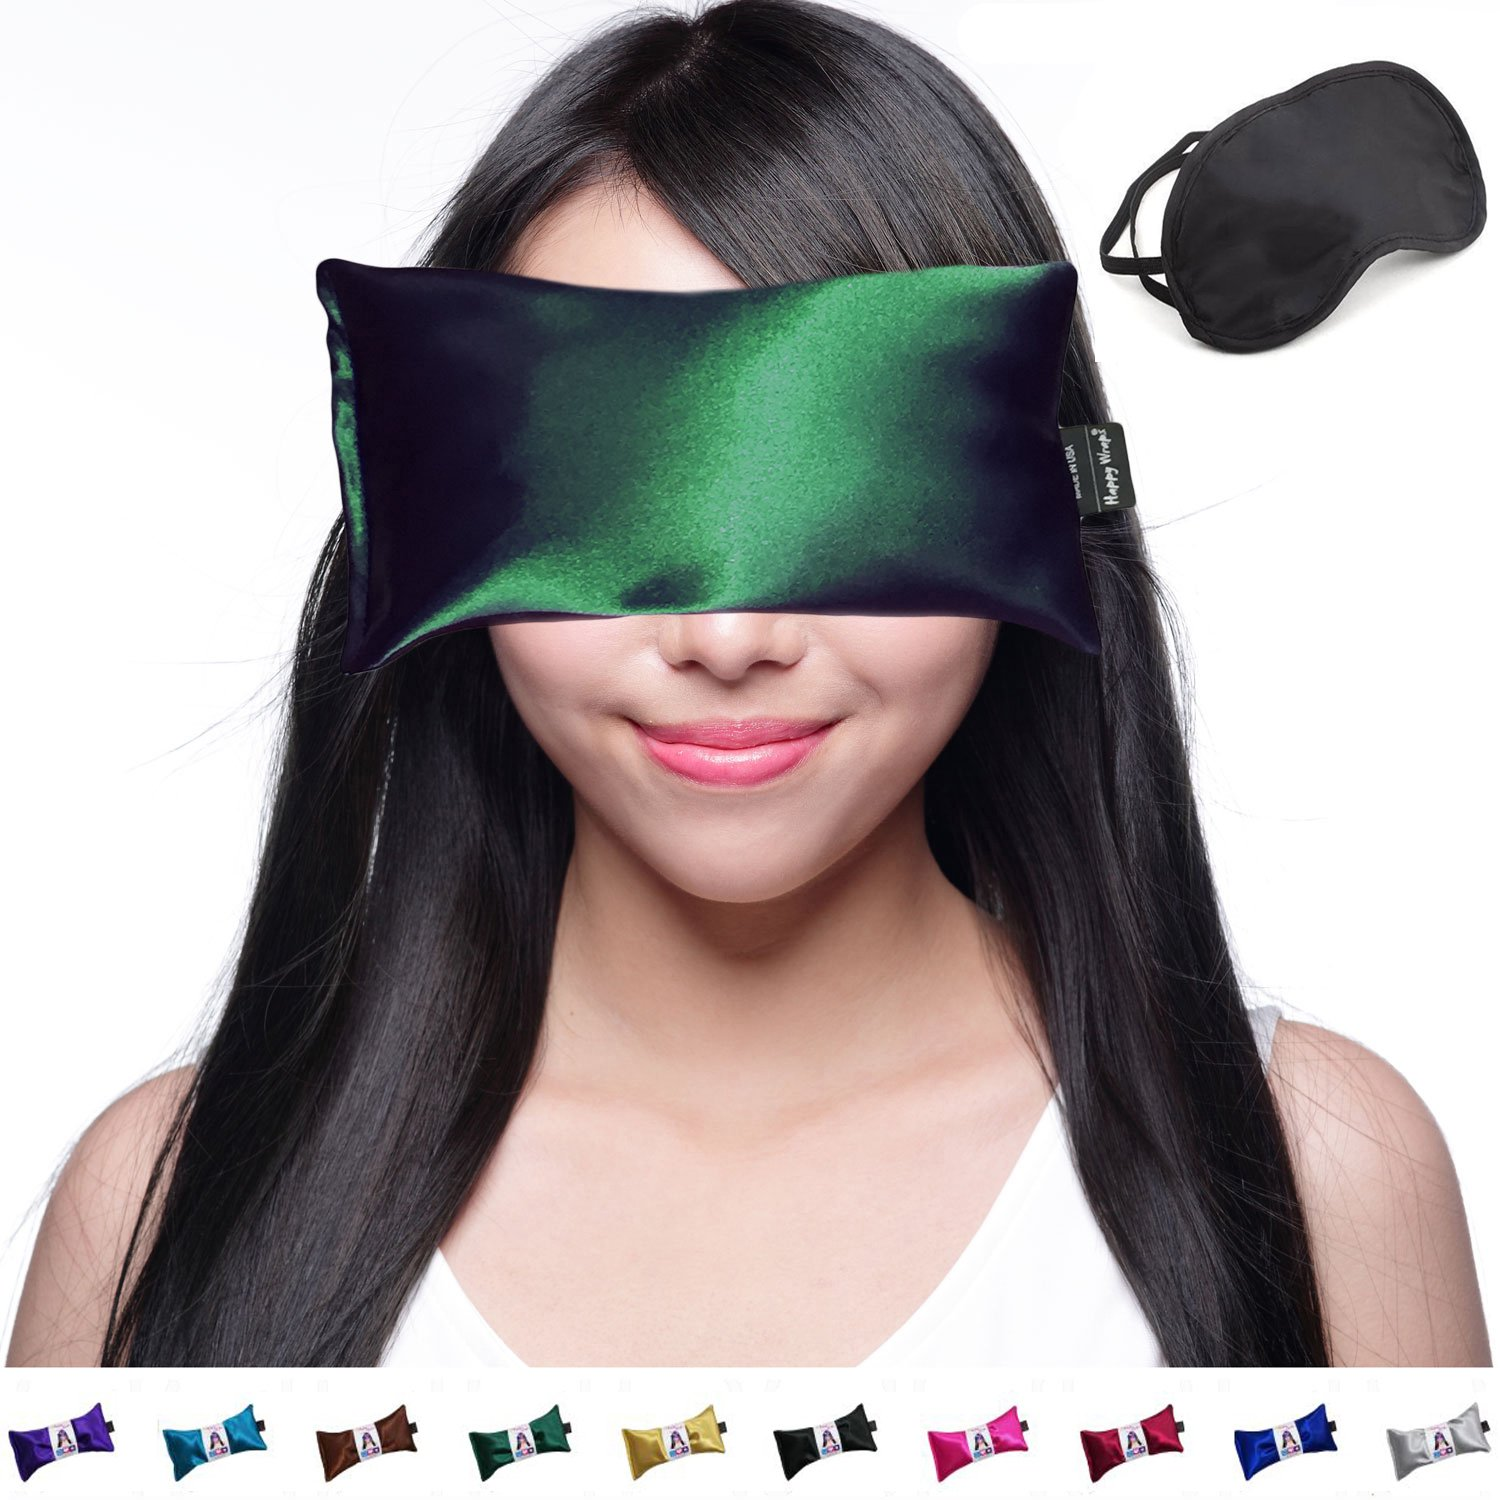 Hot Cold Lavender Eye Pillow and Eye Mask for Sleep, Yoga, Migraine Headaches, Stress Relief. By Happy Wraps - Emerald